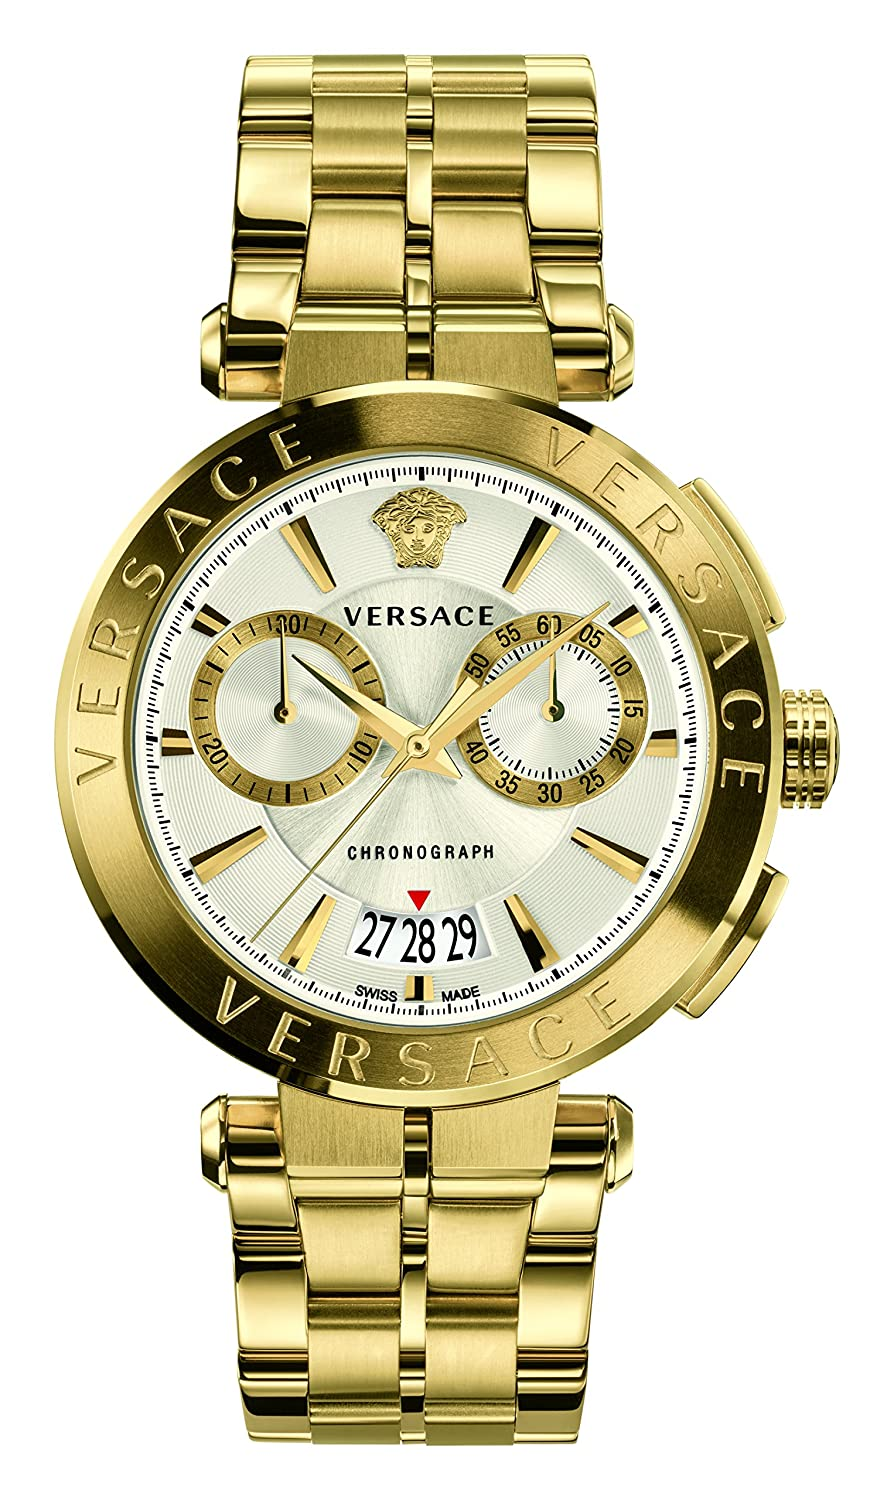 CDM product Versace Men's Luxury Aion Chronograph Silver Dial Gold Tone Stainless Steel Watch (Model: VBR060017) big image